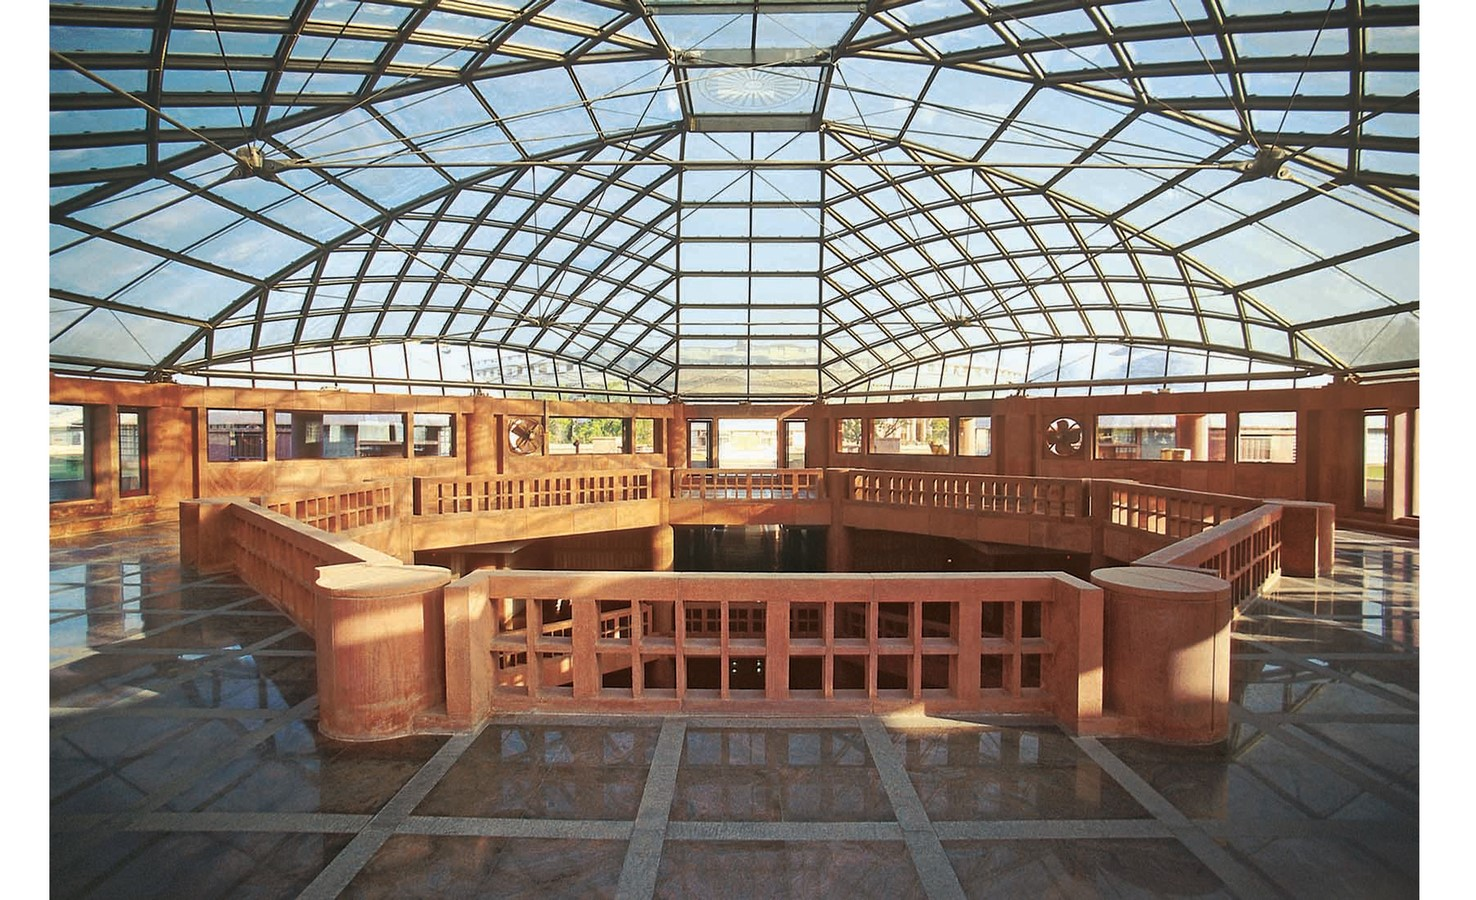 Parliament Library Building by Raj Rewal: Enlightenment translated into architecture - Sheet11